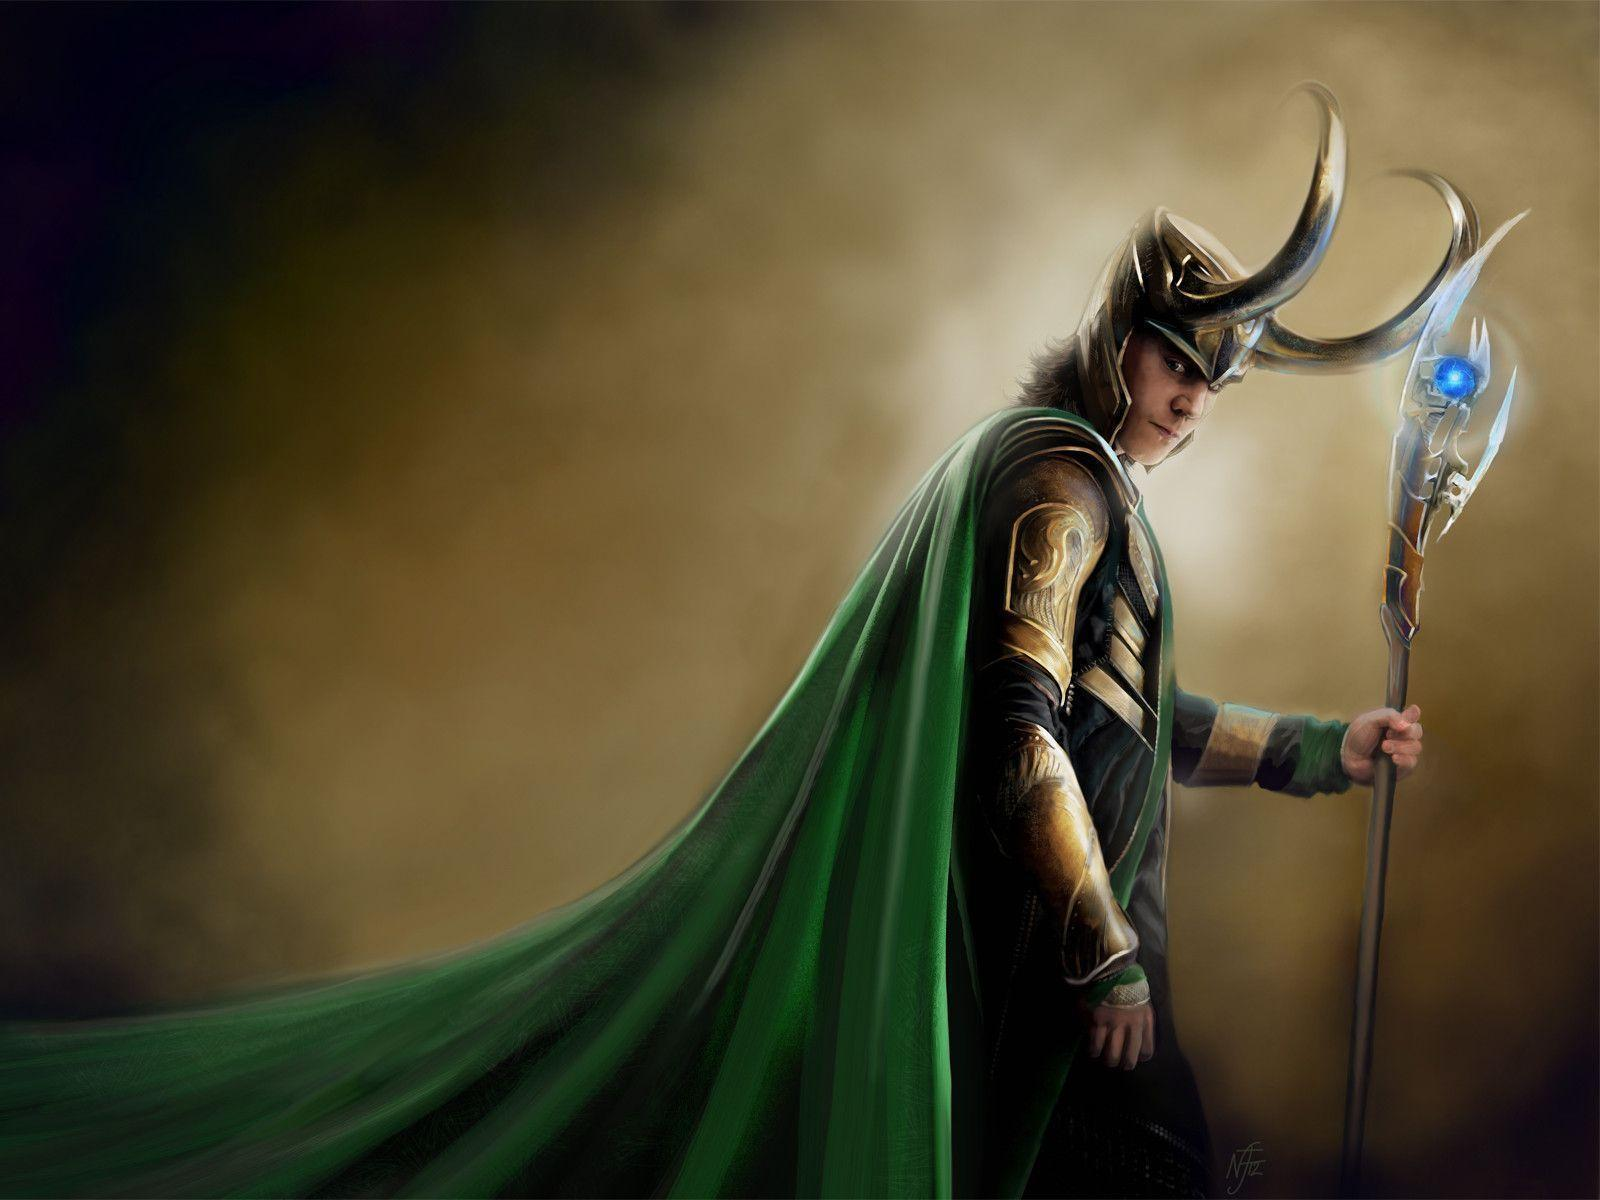 loki background for tigger - photo #9